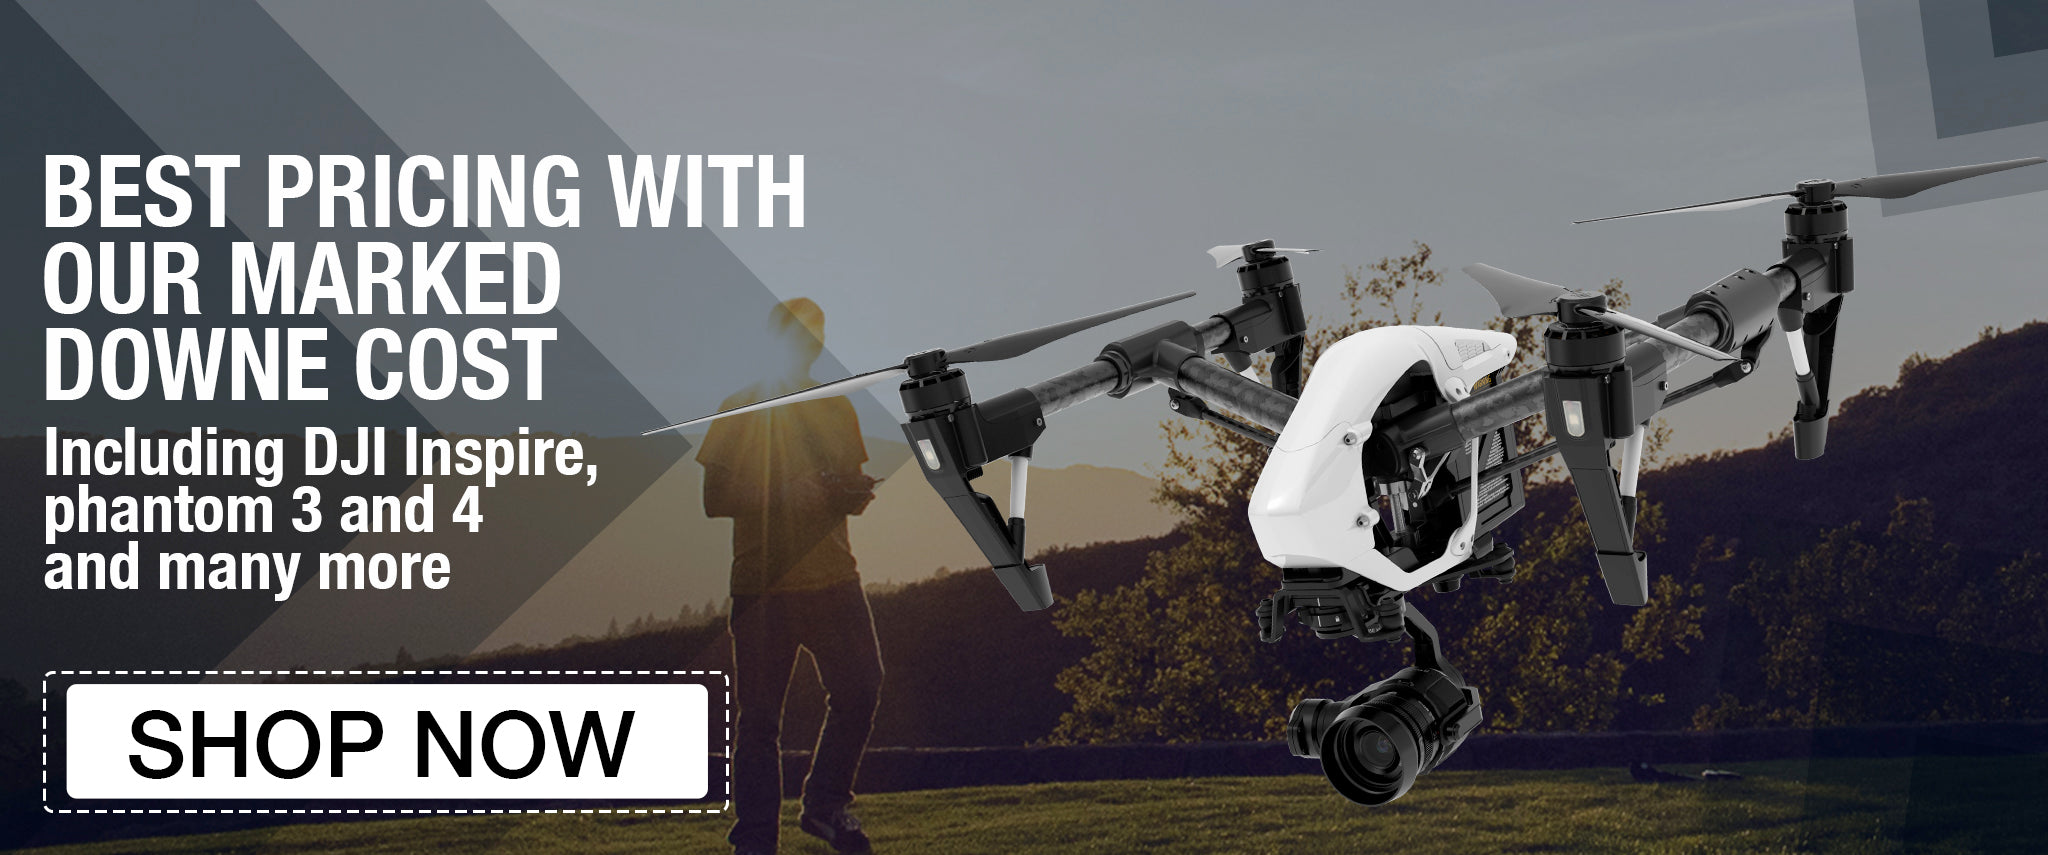 DJI Inspire Drone 1 V2.0 best price, on sale